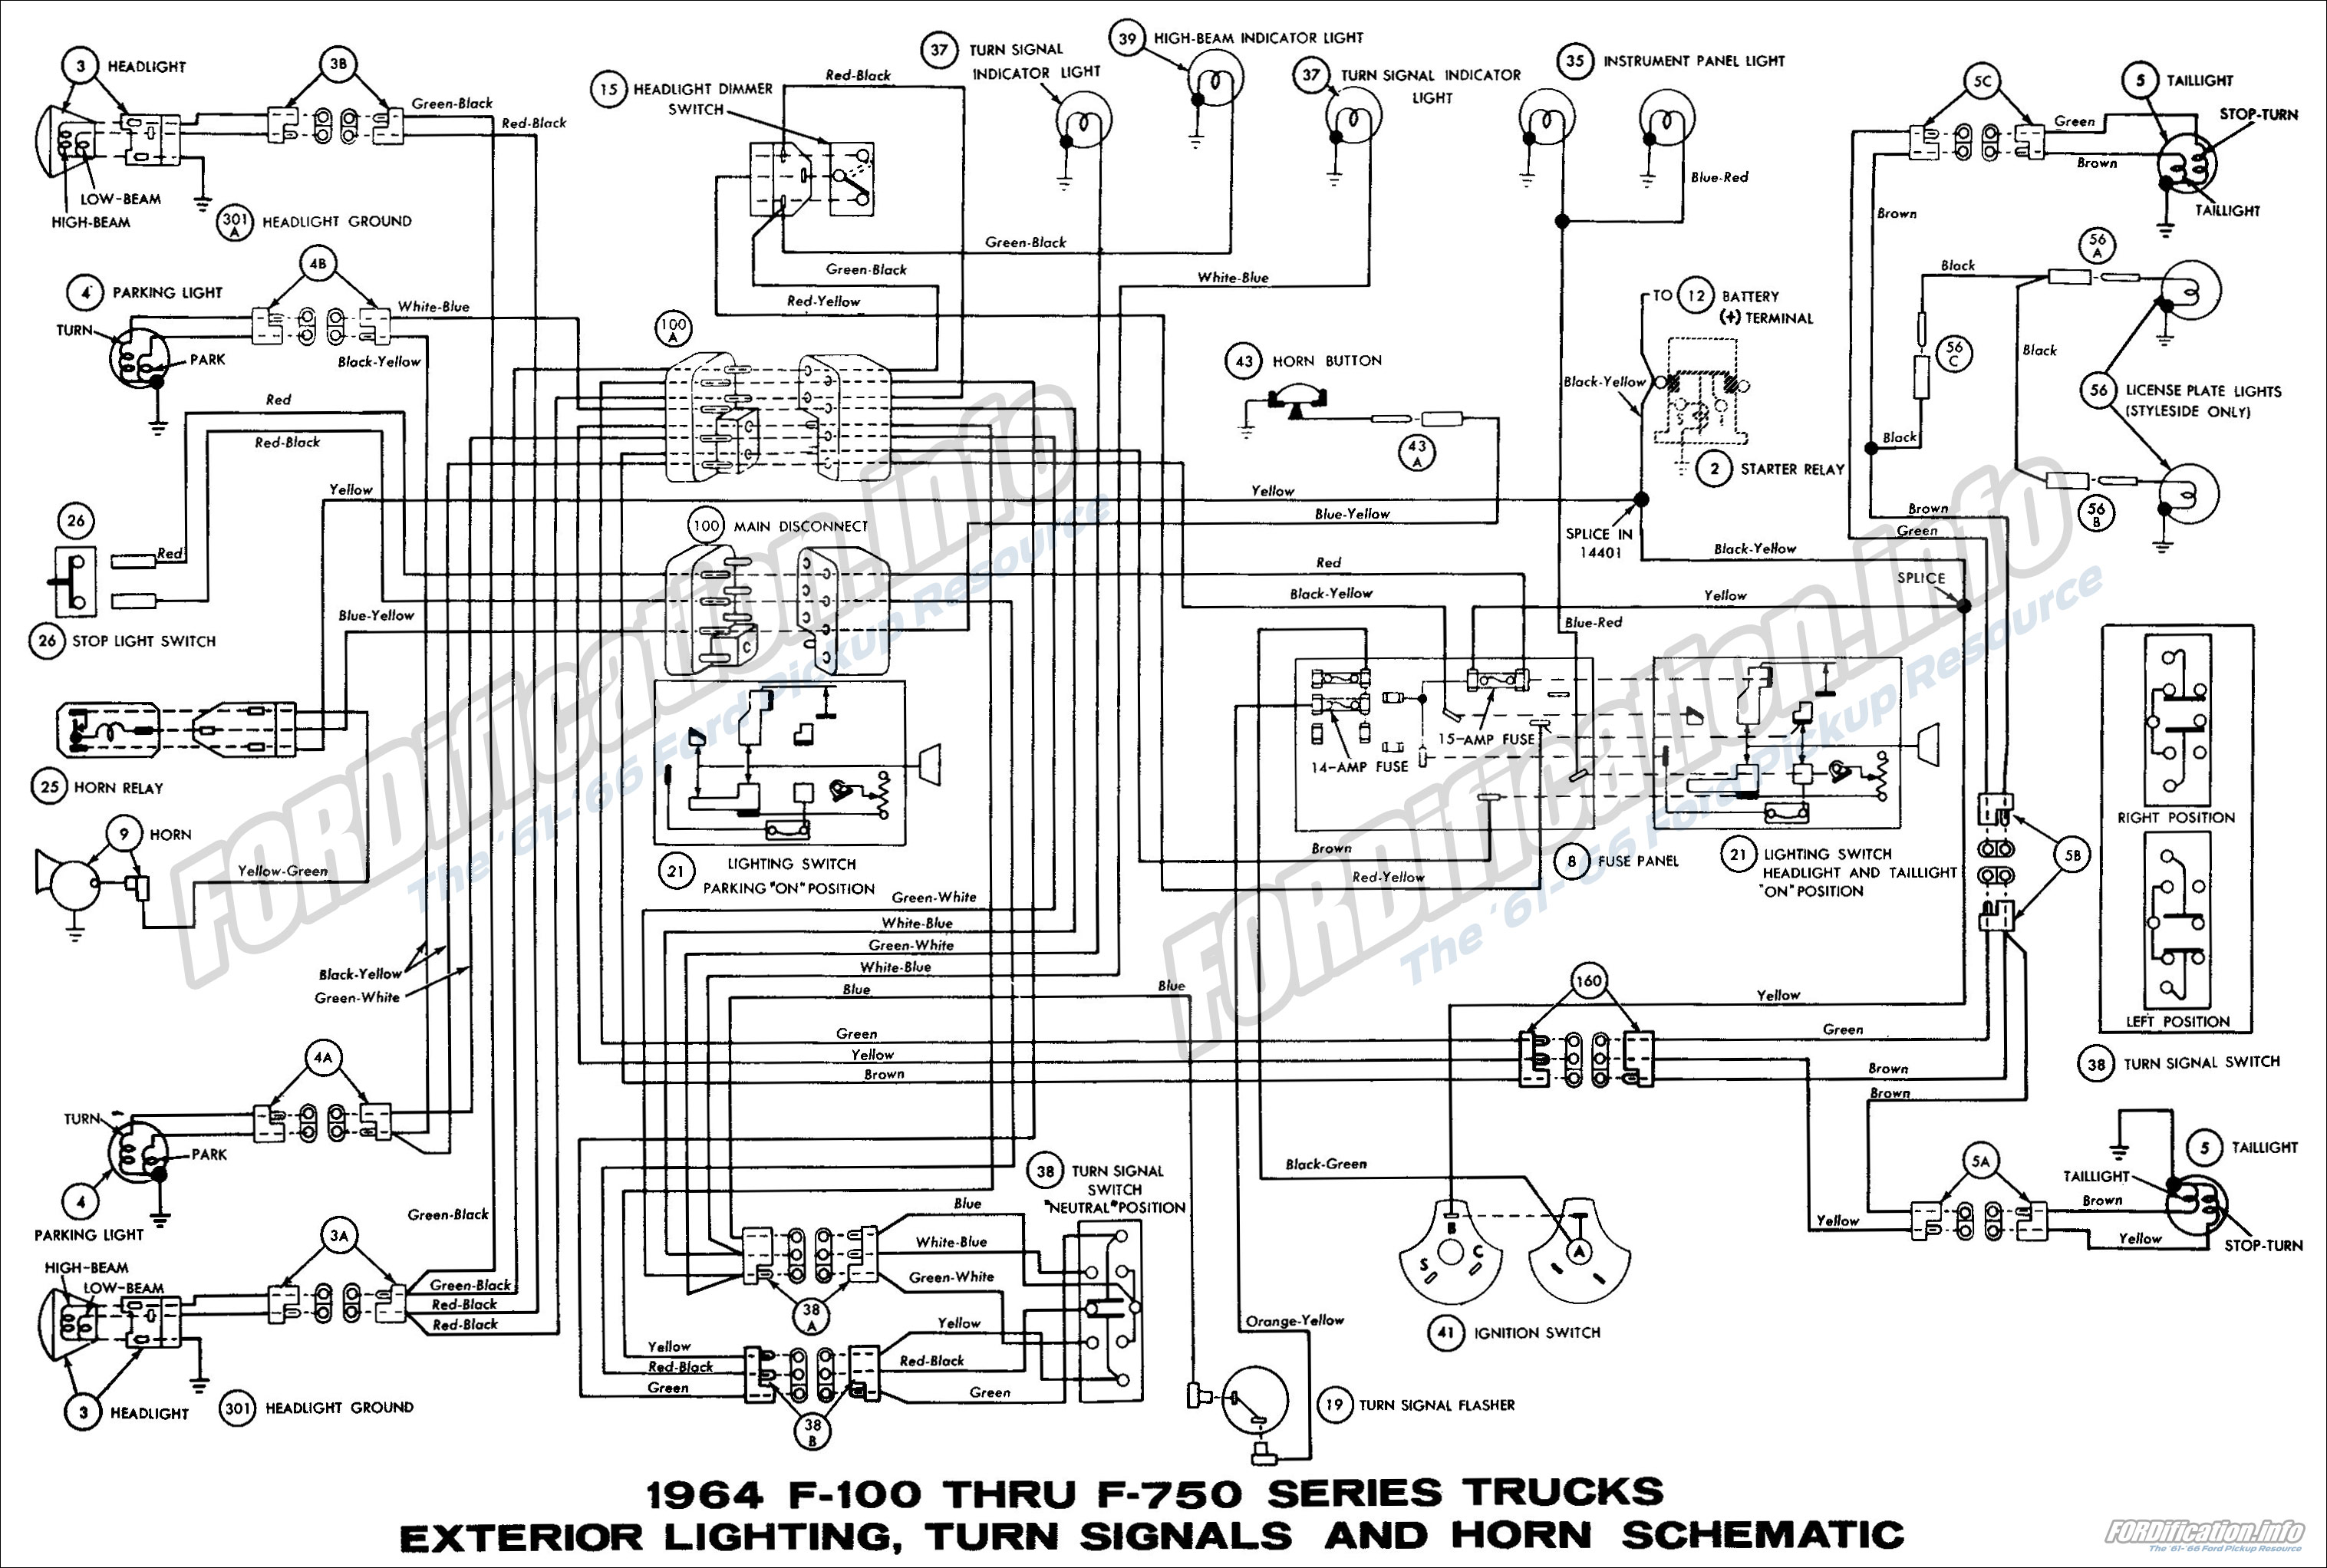 1946 1947 1948 1949 1950 1951 1952 1953 1954 ford flathead v 8 engine electrical wiring diagram schematics manual includes 4 6 cylinder engines